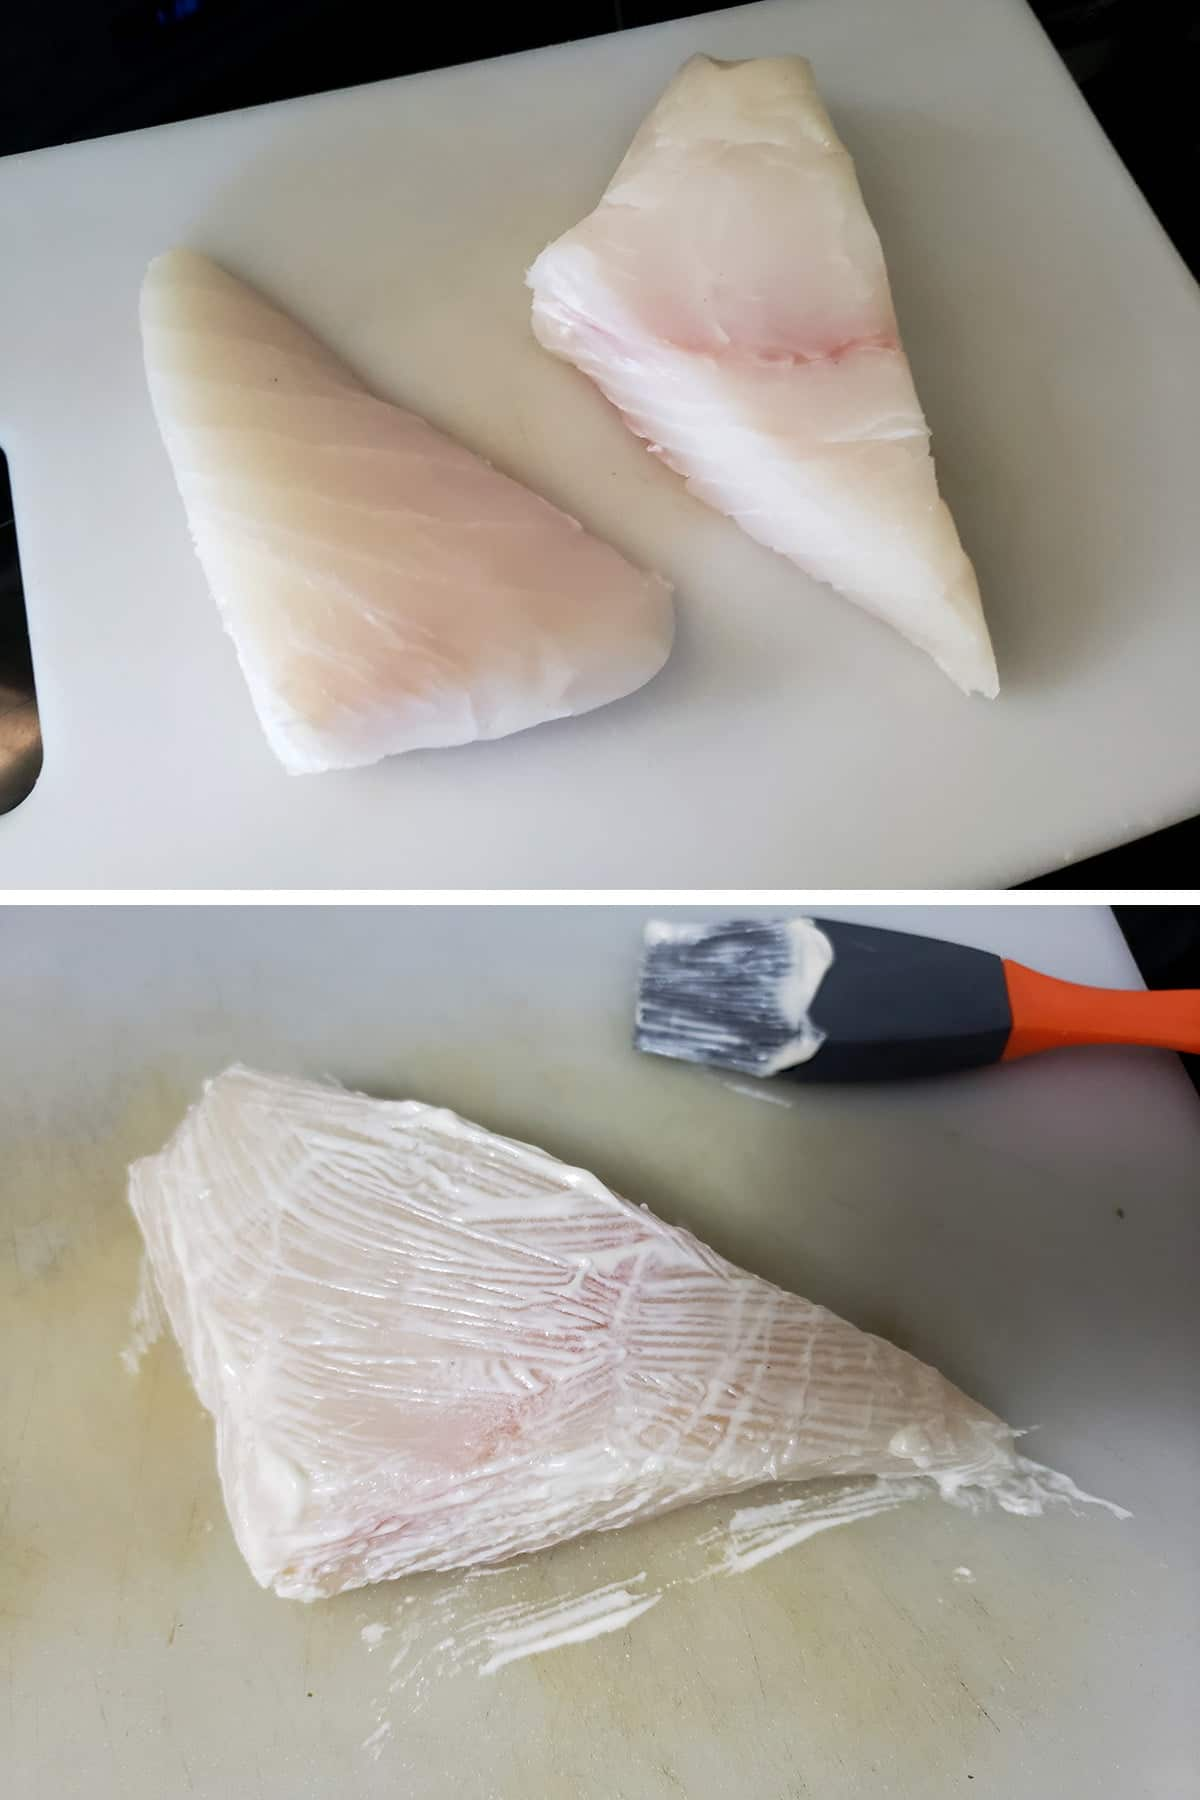 A two part image showing two seasoned halibut steaks on the top image, and a halibut steak lightly brushed with mayo on the bottom pic.